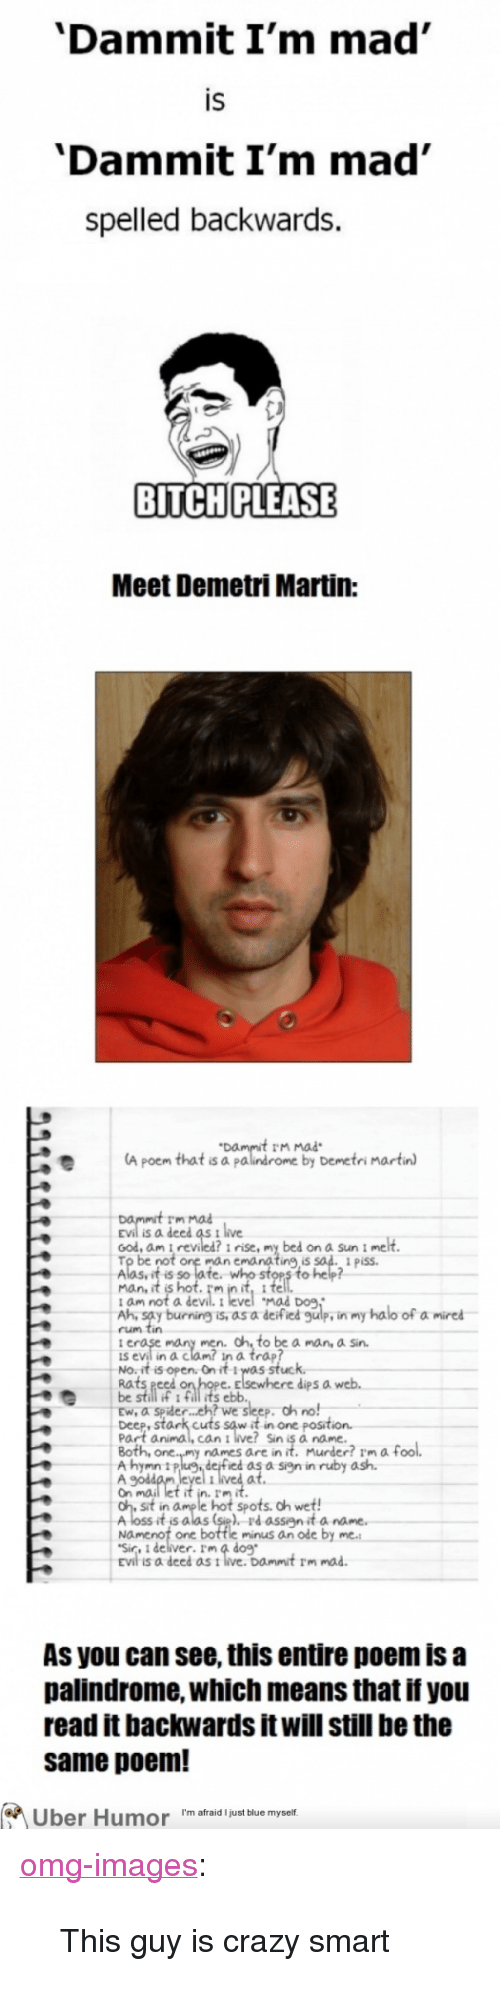 """Dammit Im Mad: 'Dammit I'm mad  IS  'Dammit I'm mad'  spelled backwards.  BITCH PLEASE  Meet Demetri Martin:  t rm mad  A poem that is a palindrome by Demetri martin  rm mad  is a deed as t live  ood, am I revied? i rise, my bed on a Sun i melt  man e  ing,is  Aasuit s hof fe nito sten to hep  mad Dog.  am not a  Ah, say burning is, as a deified gulp, in my halo of a mired  rum tin  men. oh to be a man, a sin.  is evil in a clam? in a trap?  No.it is open. On it Iwas stuc  Rats eeed  be still if 1 fill its eblb  Ew, a spider... eh? we sleep. oh no!  Deep, stark cuts saw it in one posit  Part animal, can i ive! Sin iS a name  dips a  names are in it. Murder? Im af  hymn 11P  Ale eyel iet ar.asninrby ash  Sit in dme le hot spots. oh wetf!  A loss it is alas (sie). rdassign it a name  Namenot one bottle minus an ode by  EVİ is a deed as t live.  Dammit rm mad.  As you can see, this entire poem is a  palindrome, which means that if you  read it backwards it will still be the  same poem!  Uber Humor 'm afrid just blue myself <p><a href=""""http://omg-images.tumblr.com/post/152854245066/this-guy-is-crazy-smart"""" class=""""tumblr_blog"""">omg-images</a>:</p>  <blockquote><p>This guy is crazy smart</p></blockquote>"""